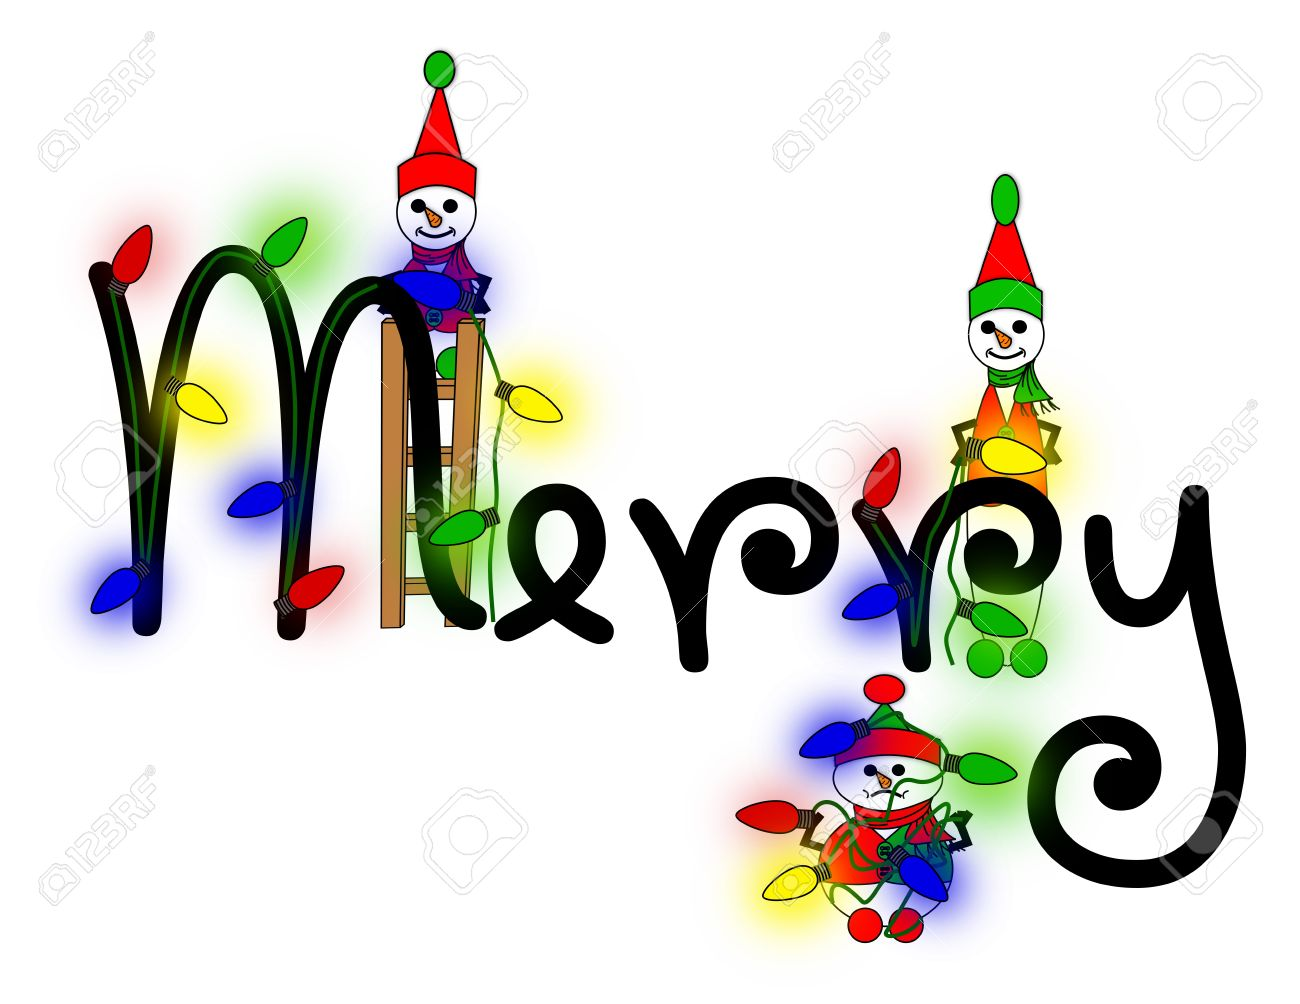 Snow Elves Decorating The Word Merry With Christmas Lights Stock ...